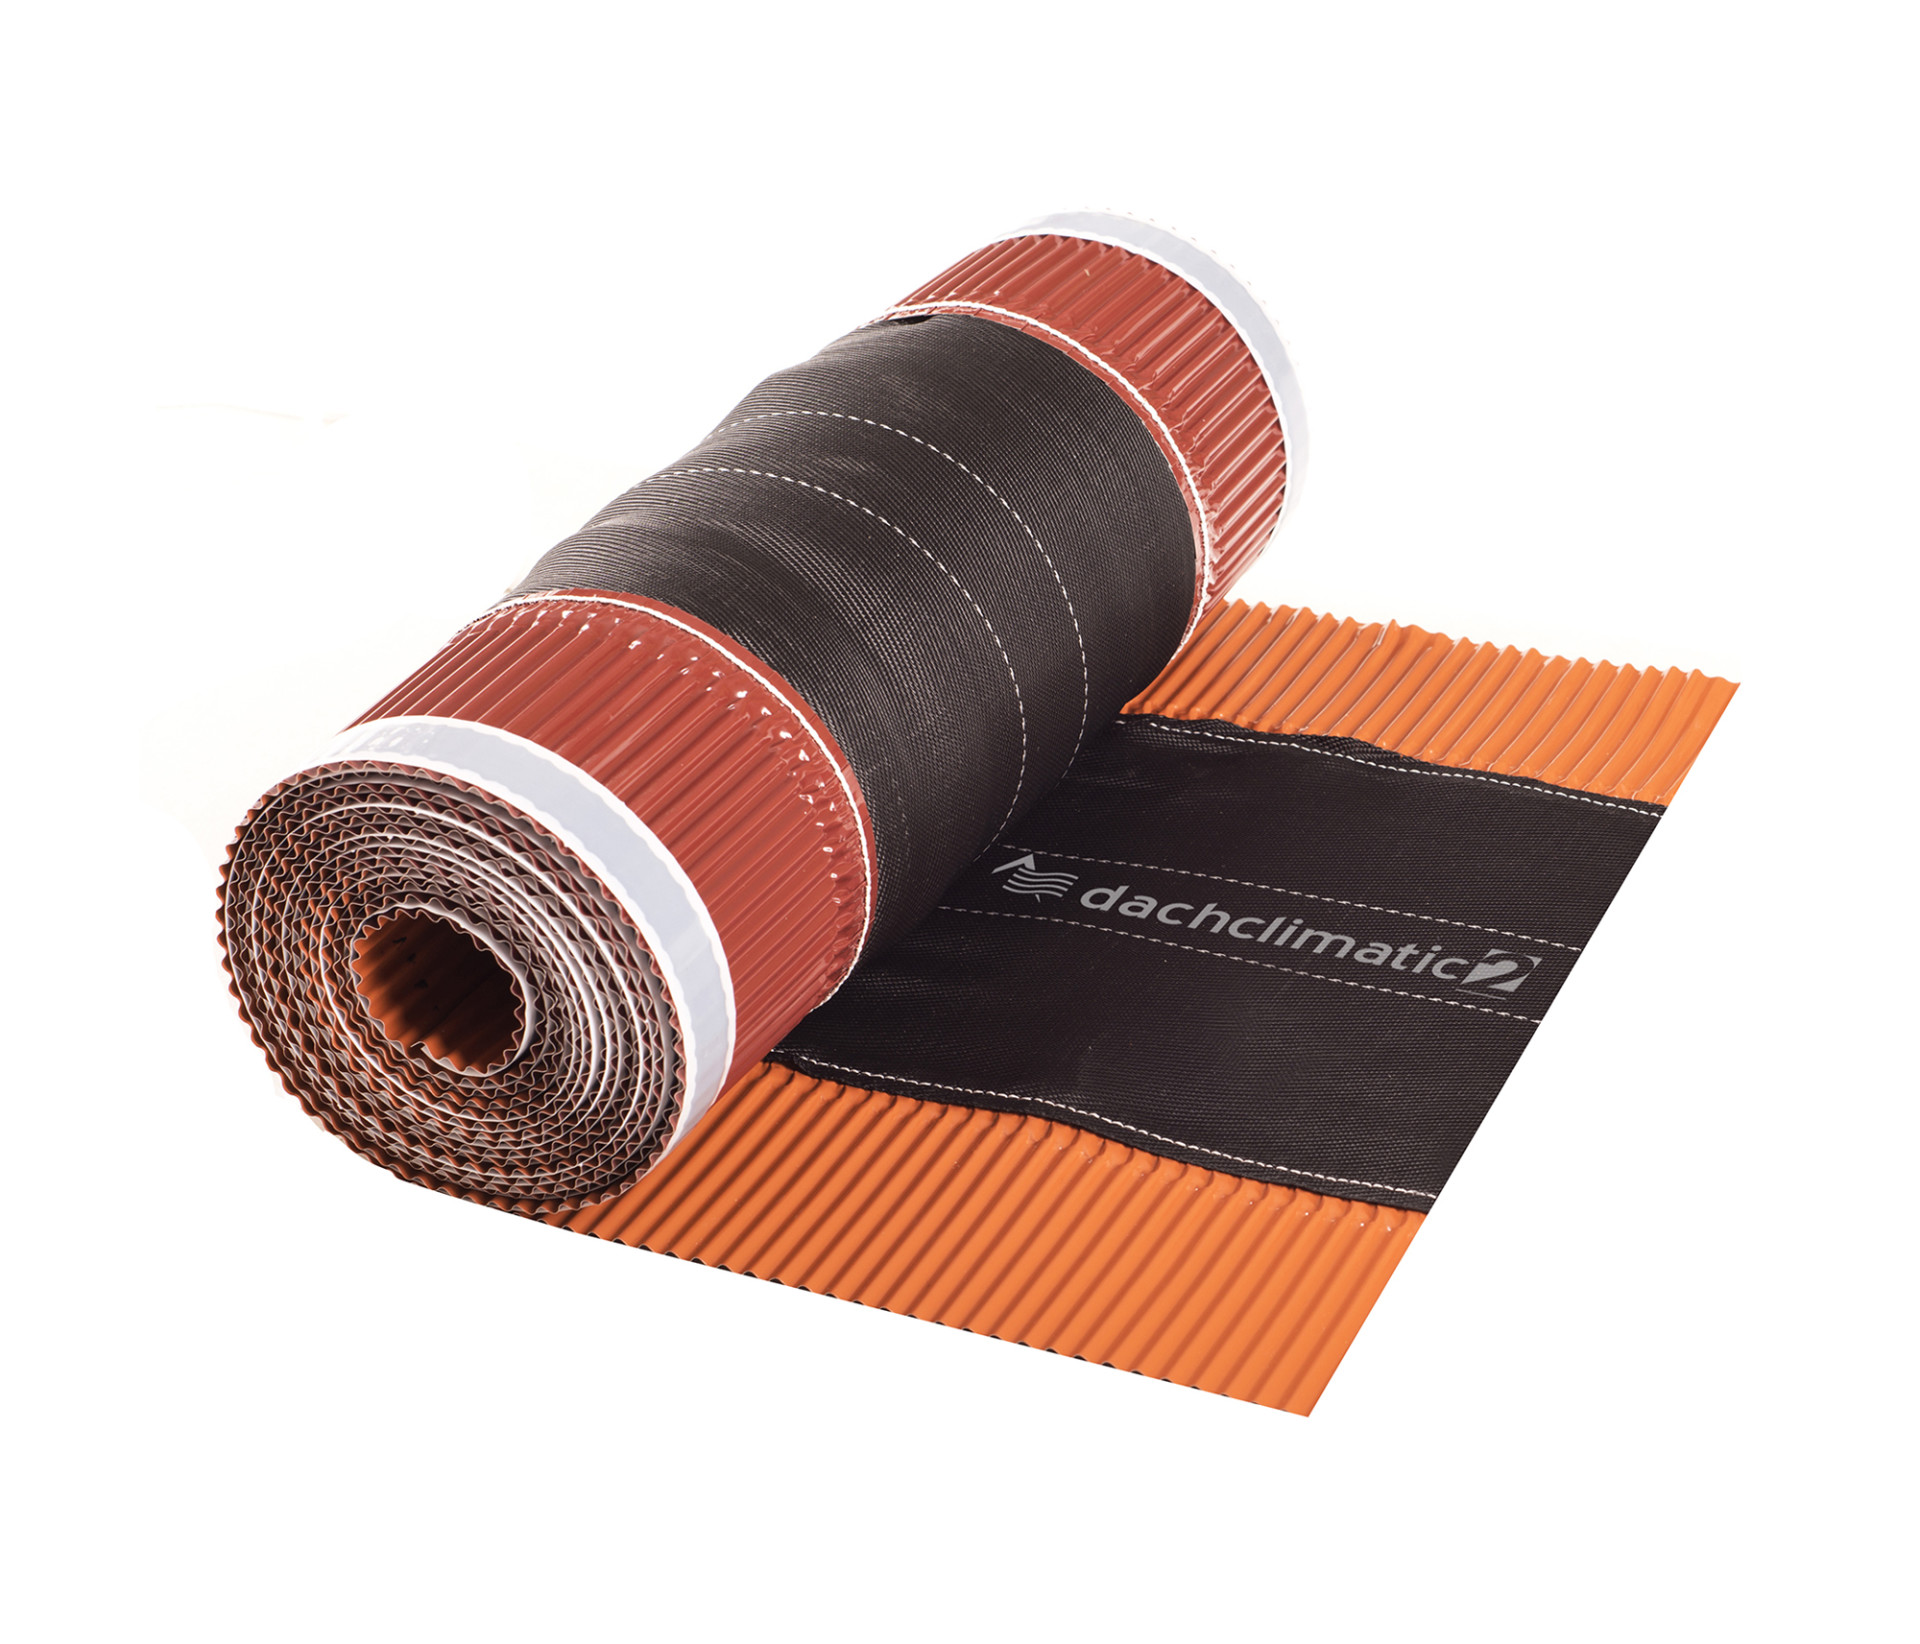 mat physio mats kinesiology sport tape therapeutic support athletic shop muscle elastic roll